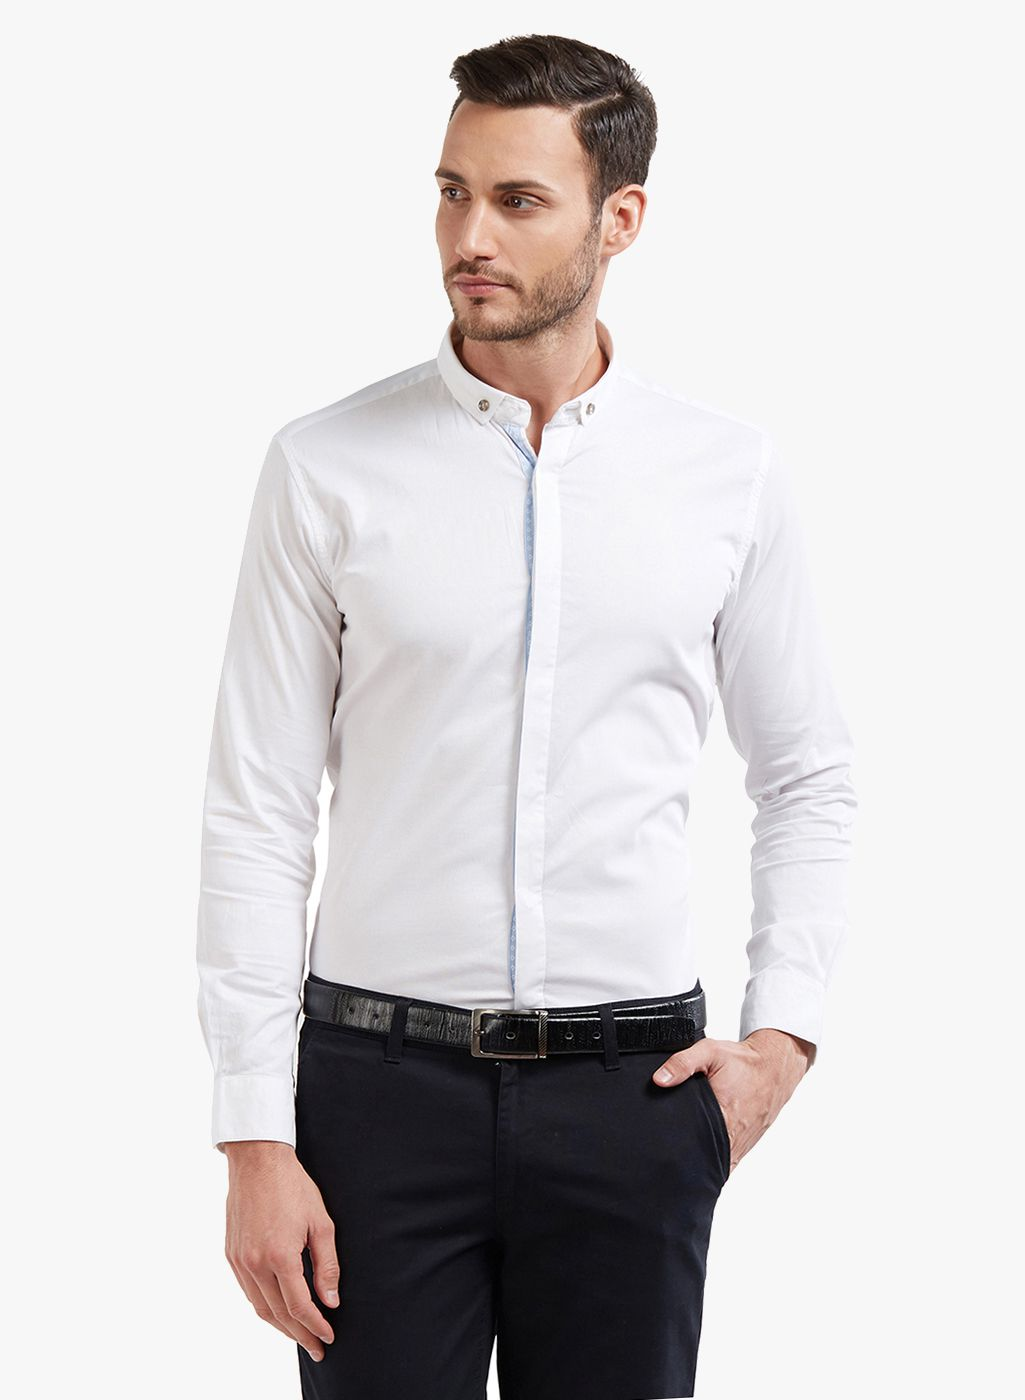 4eb153c4198 LAWMAN pg3 White Slim Fit Shirt - Buy LAWMAN pg3 White Slim Fit Shirt Online  at Best Prices in India on Snapdeal